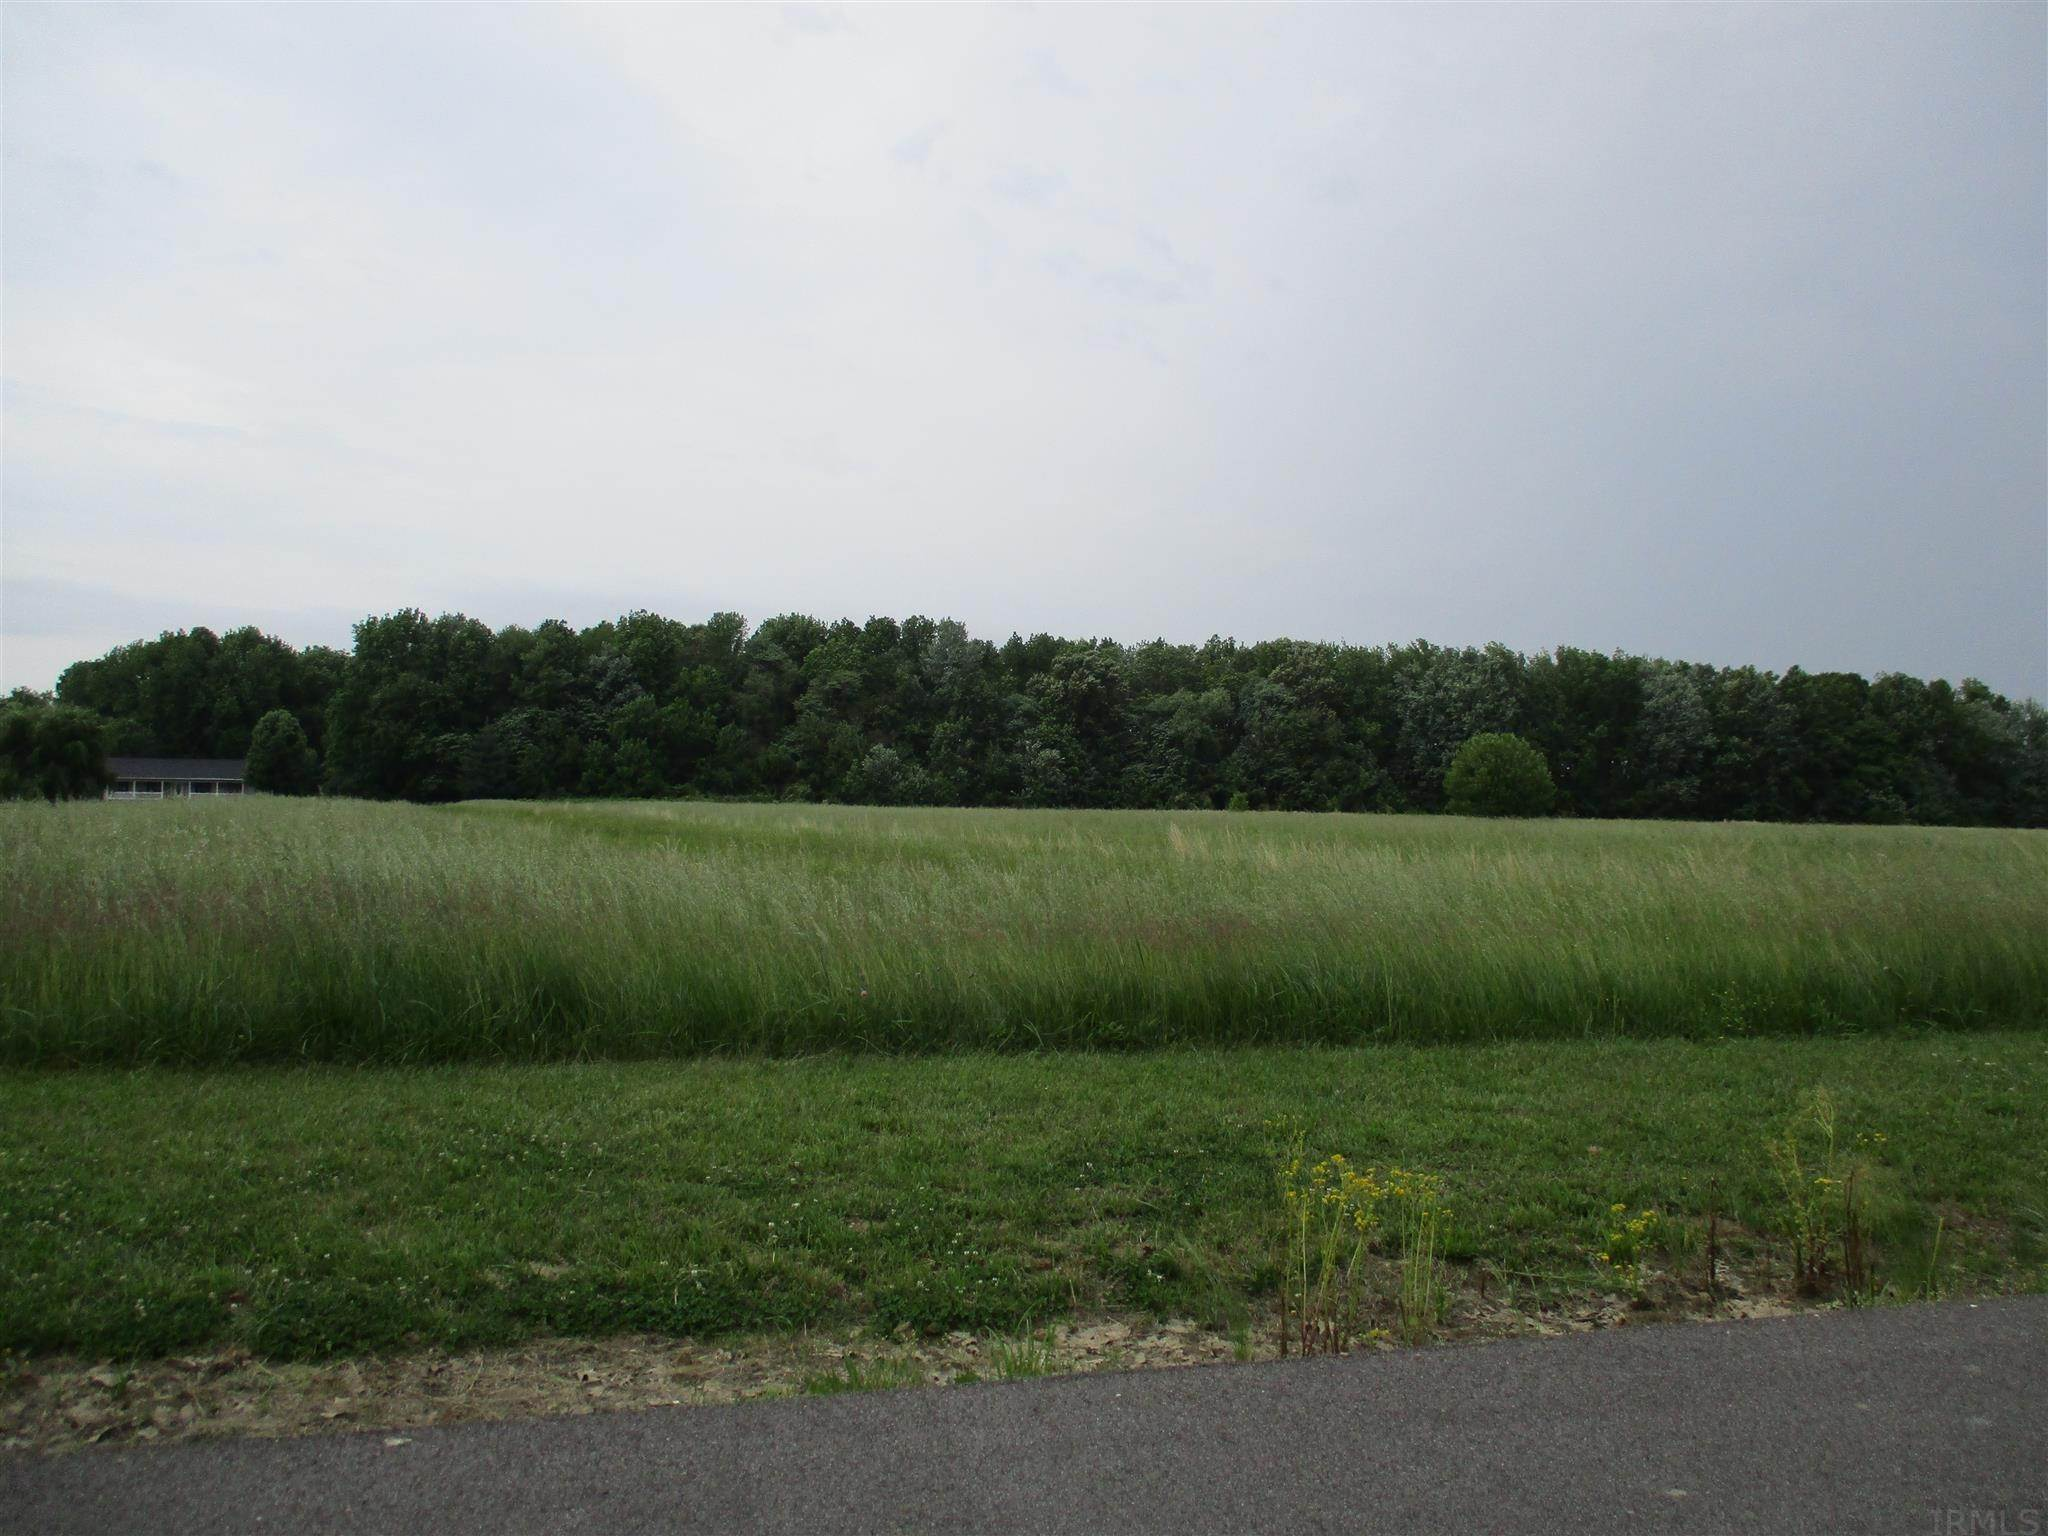 Residential Lots & Land for Sale at Grand Avenue Grandview, Indiana 47615 United States